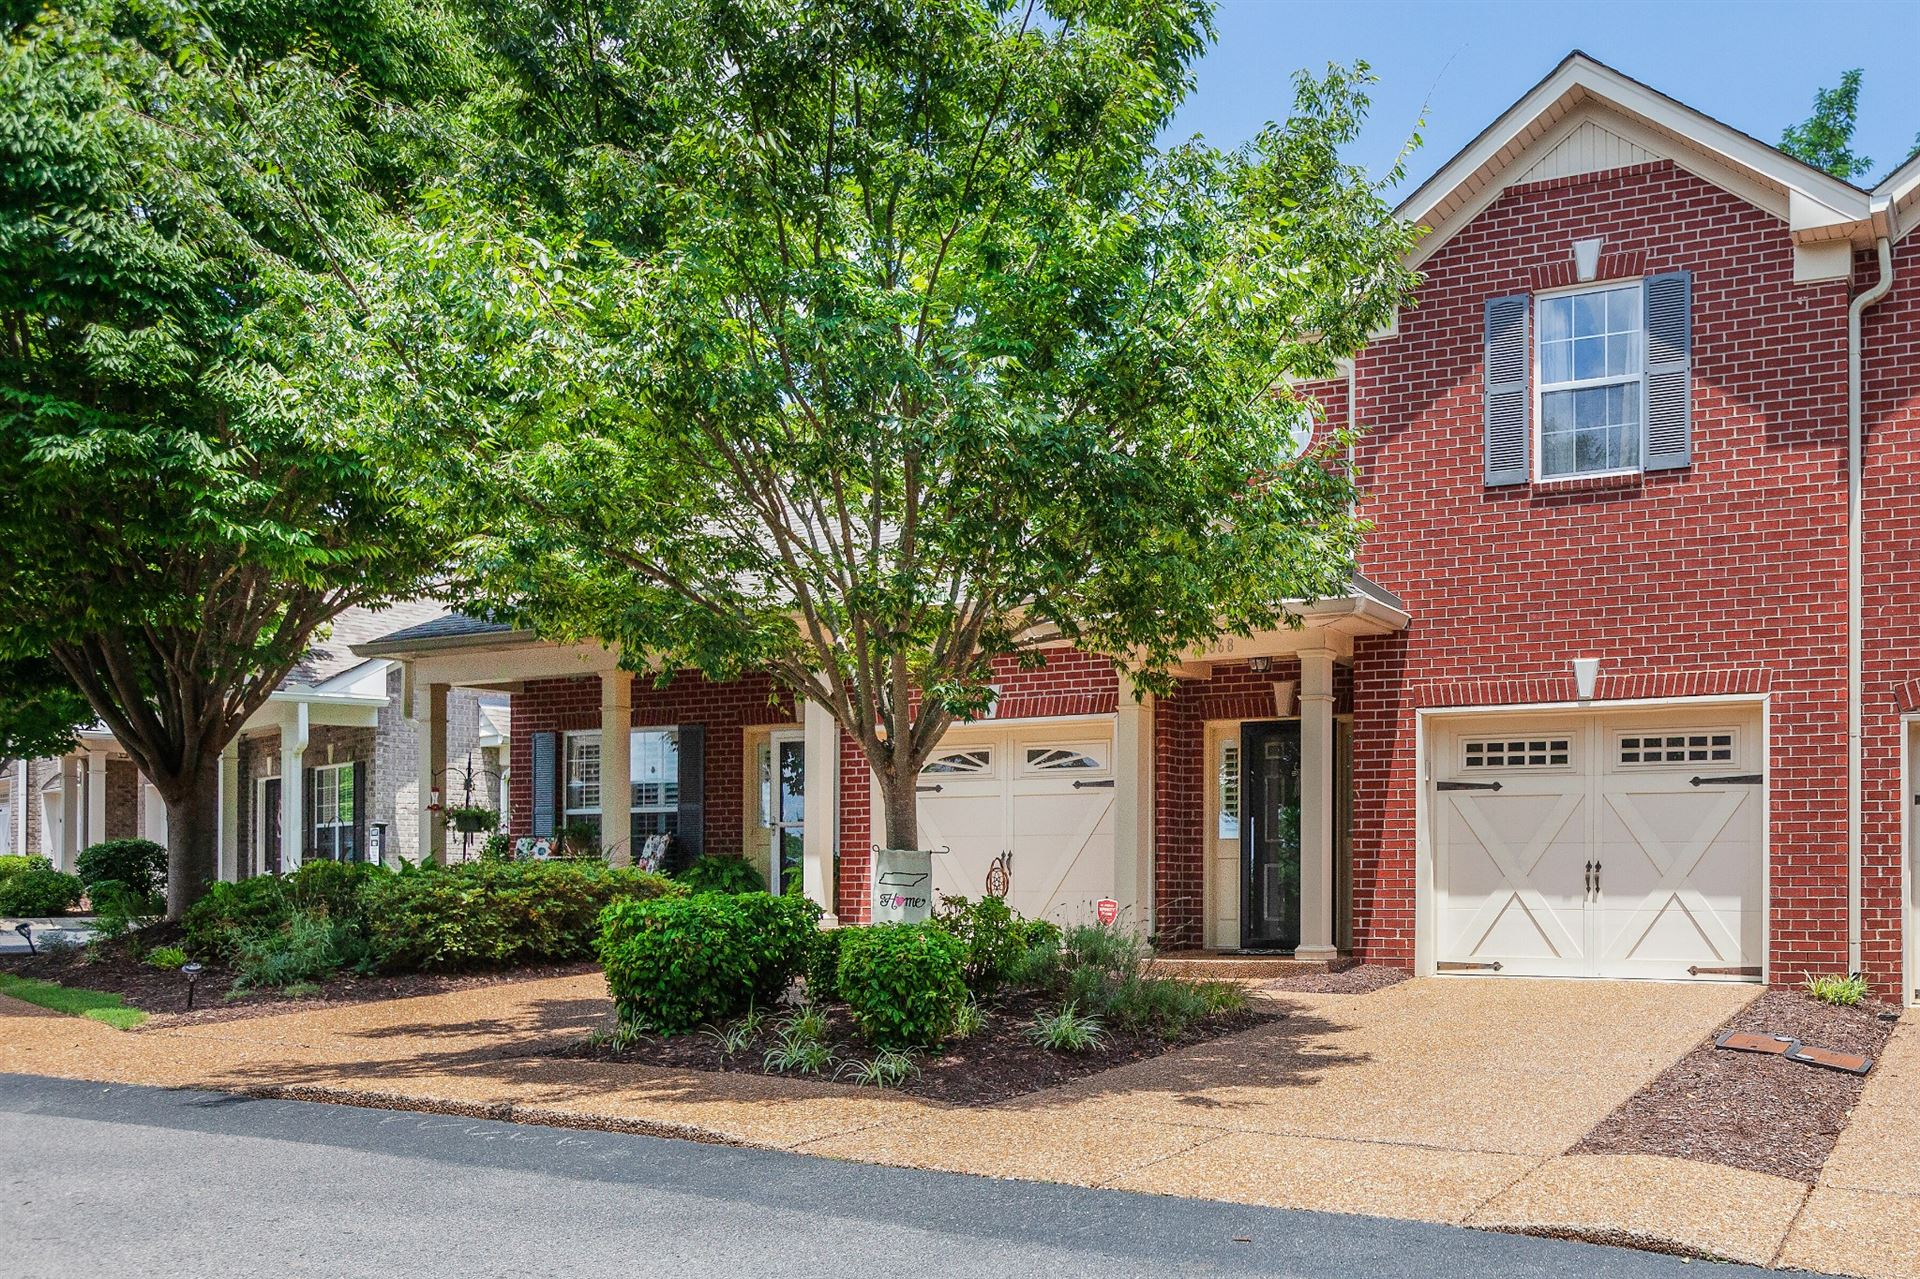 Photo of 1868 Brentwood Pointe, Franklin, TN 37067 (MLS # 2169222)